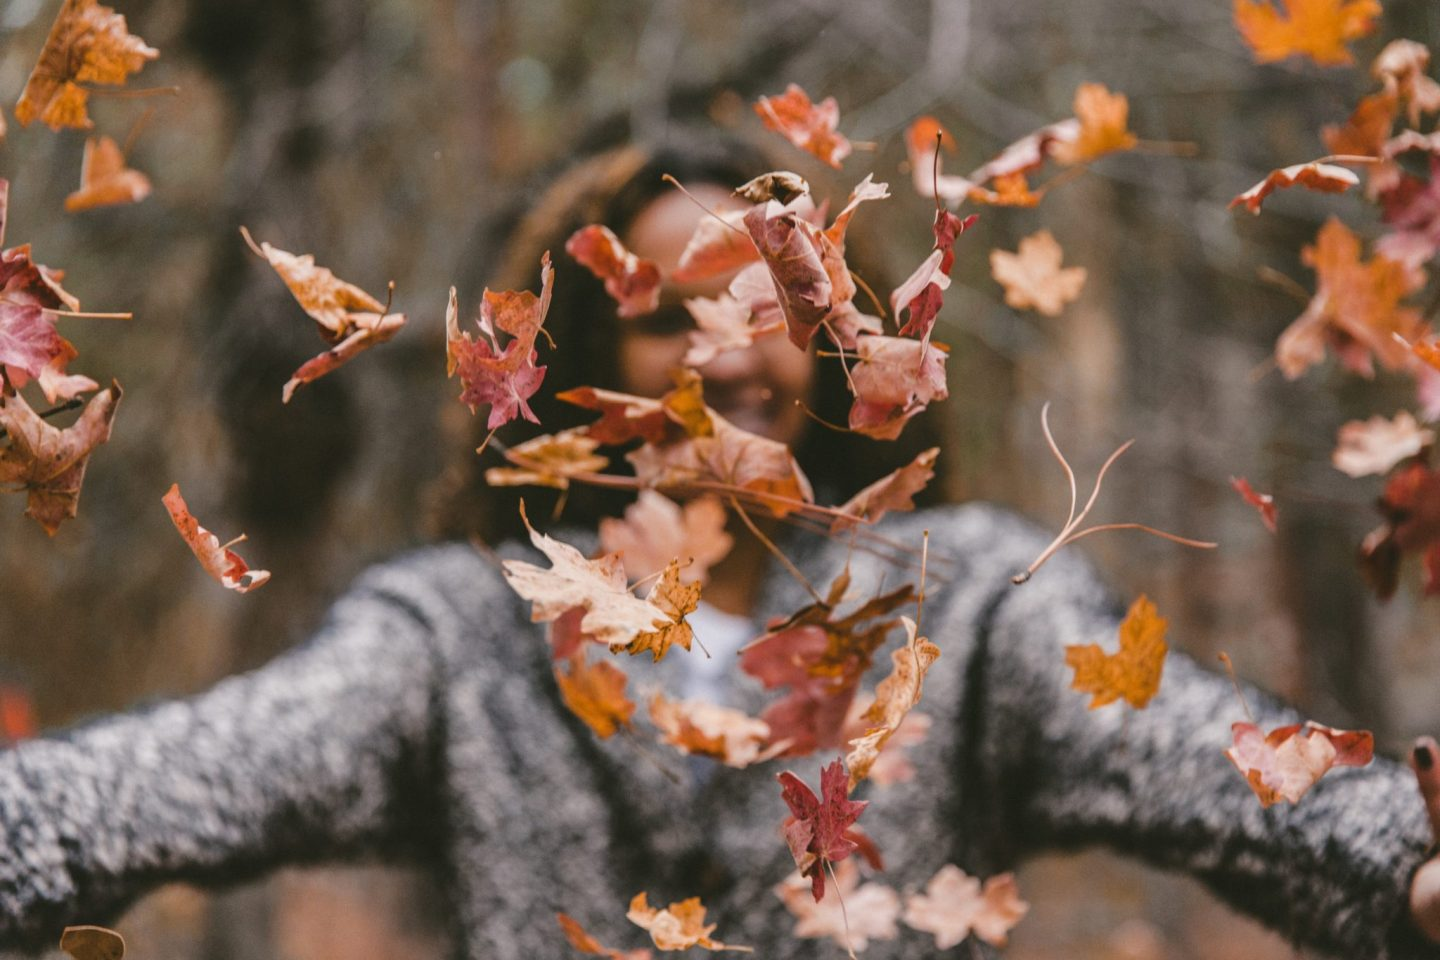 woman throwing autumn leaves in the air. The leaves in front of her are in focus whereas she is blurred.